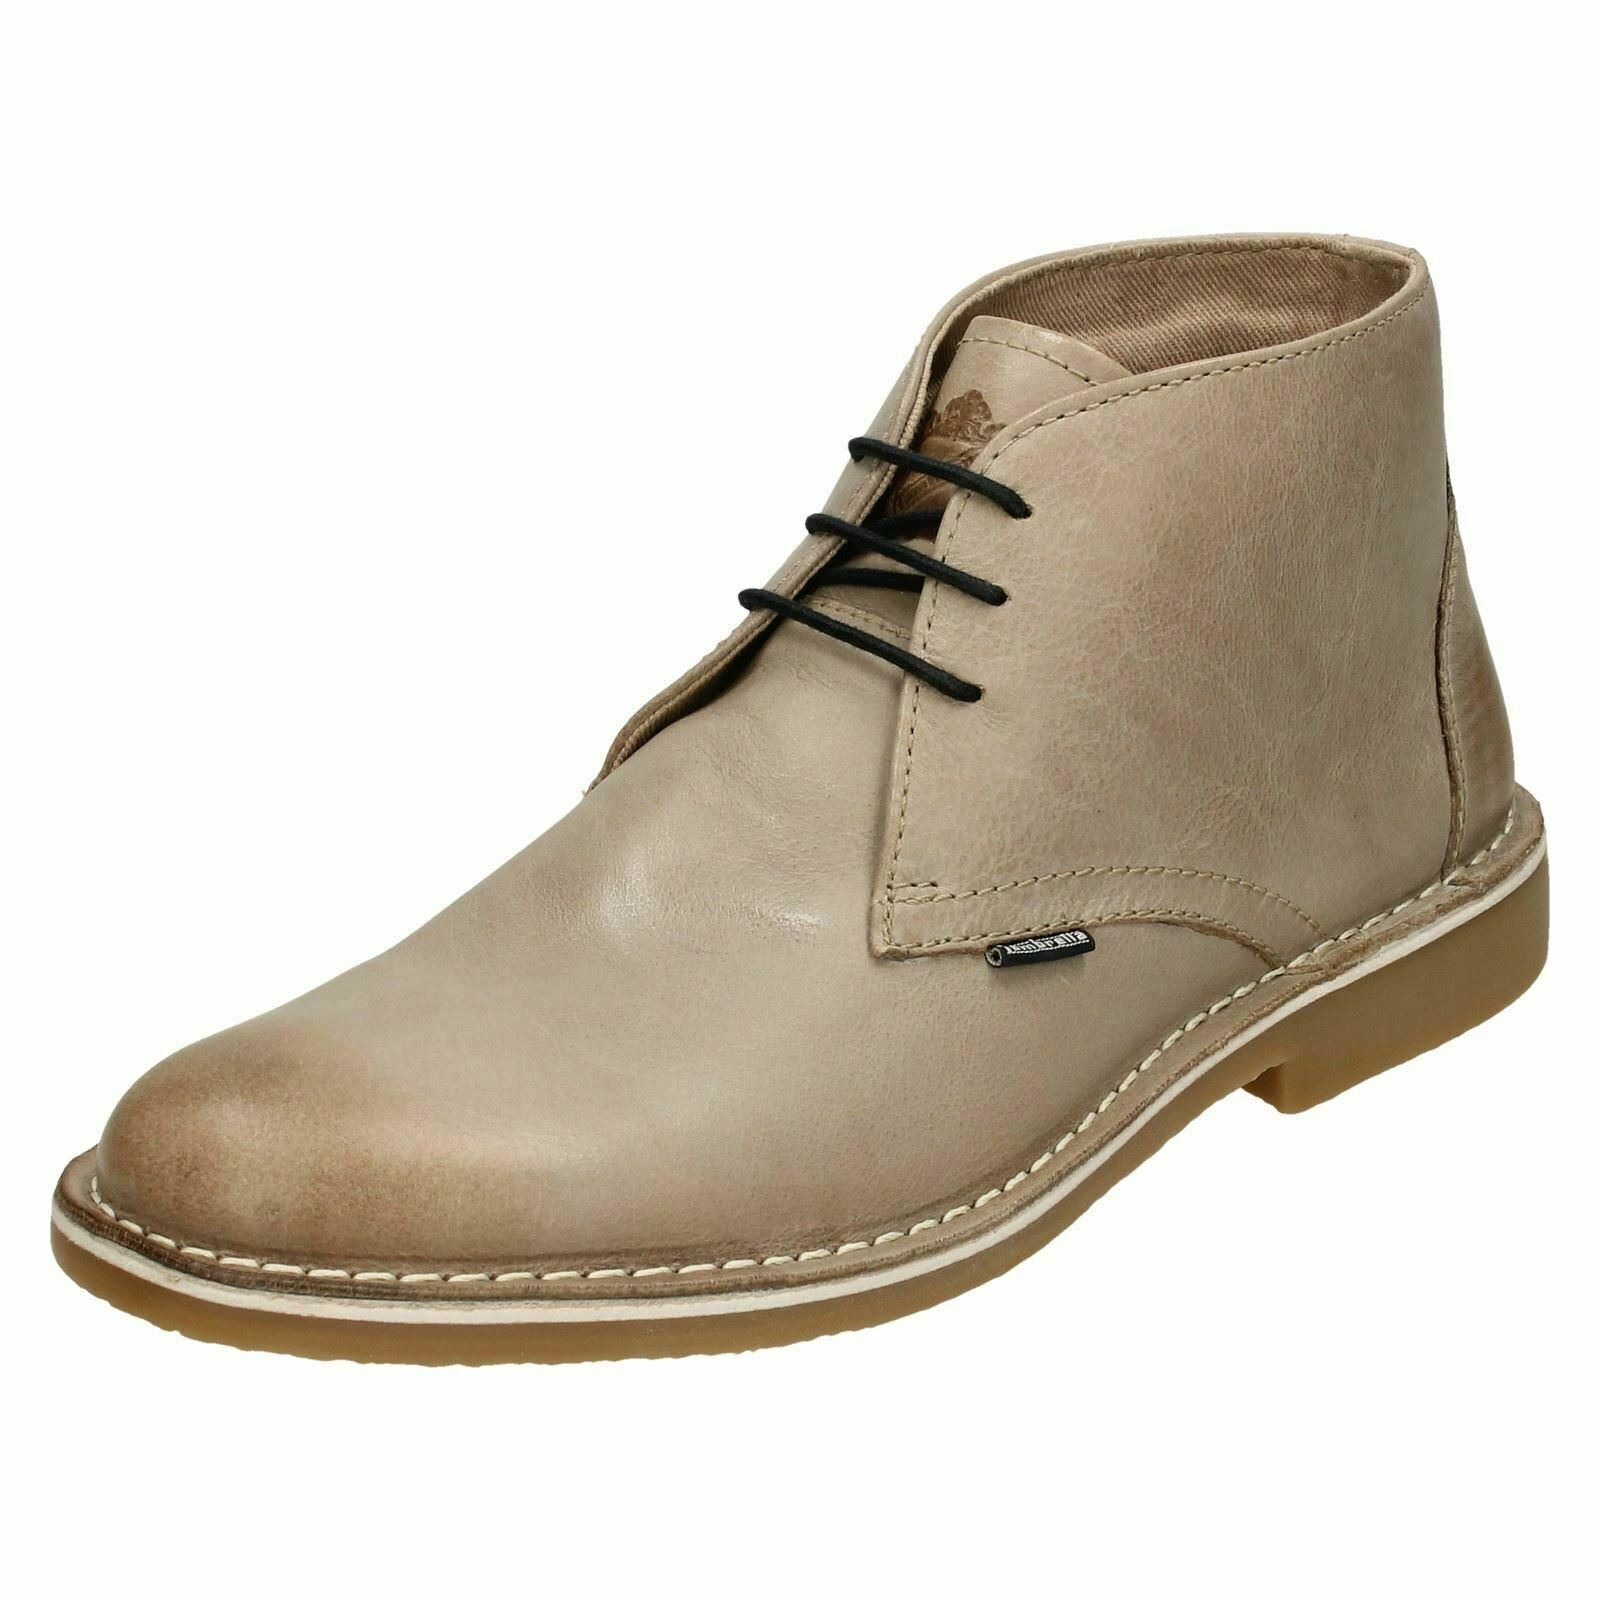 Mens Lambretta Casual Ankle Boots Canary LG 14131